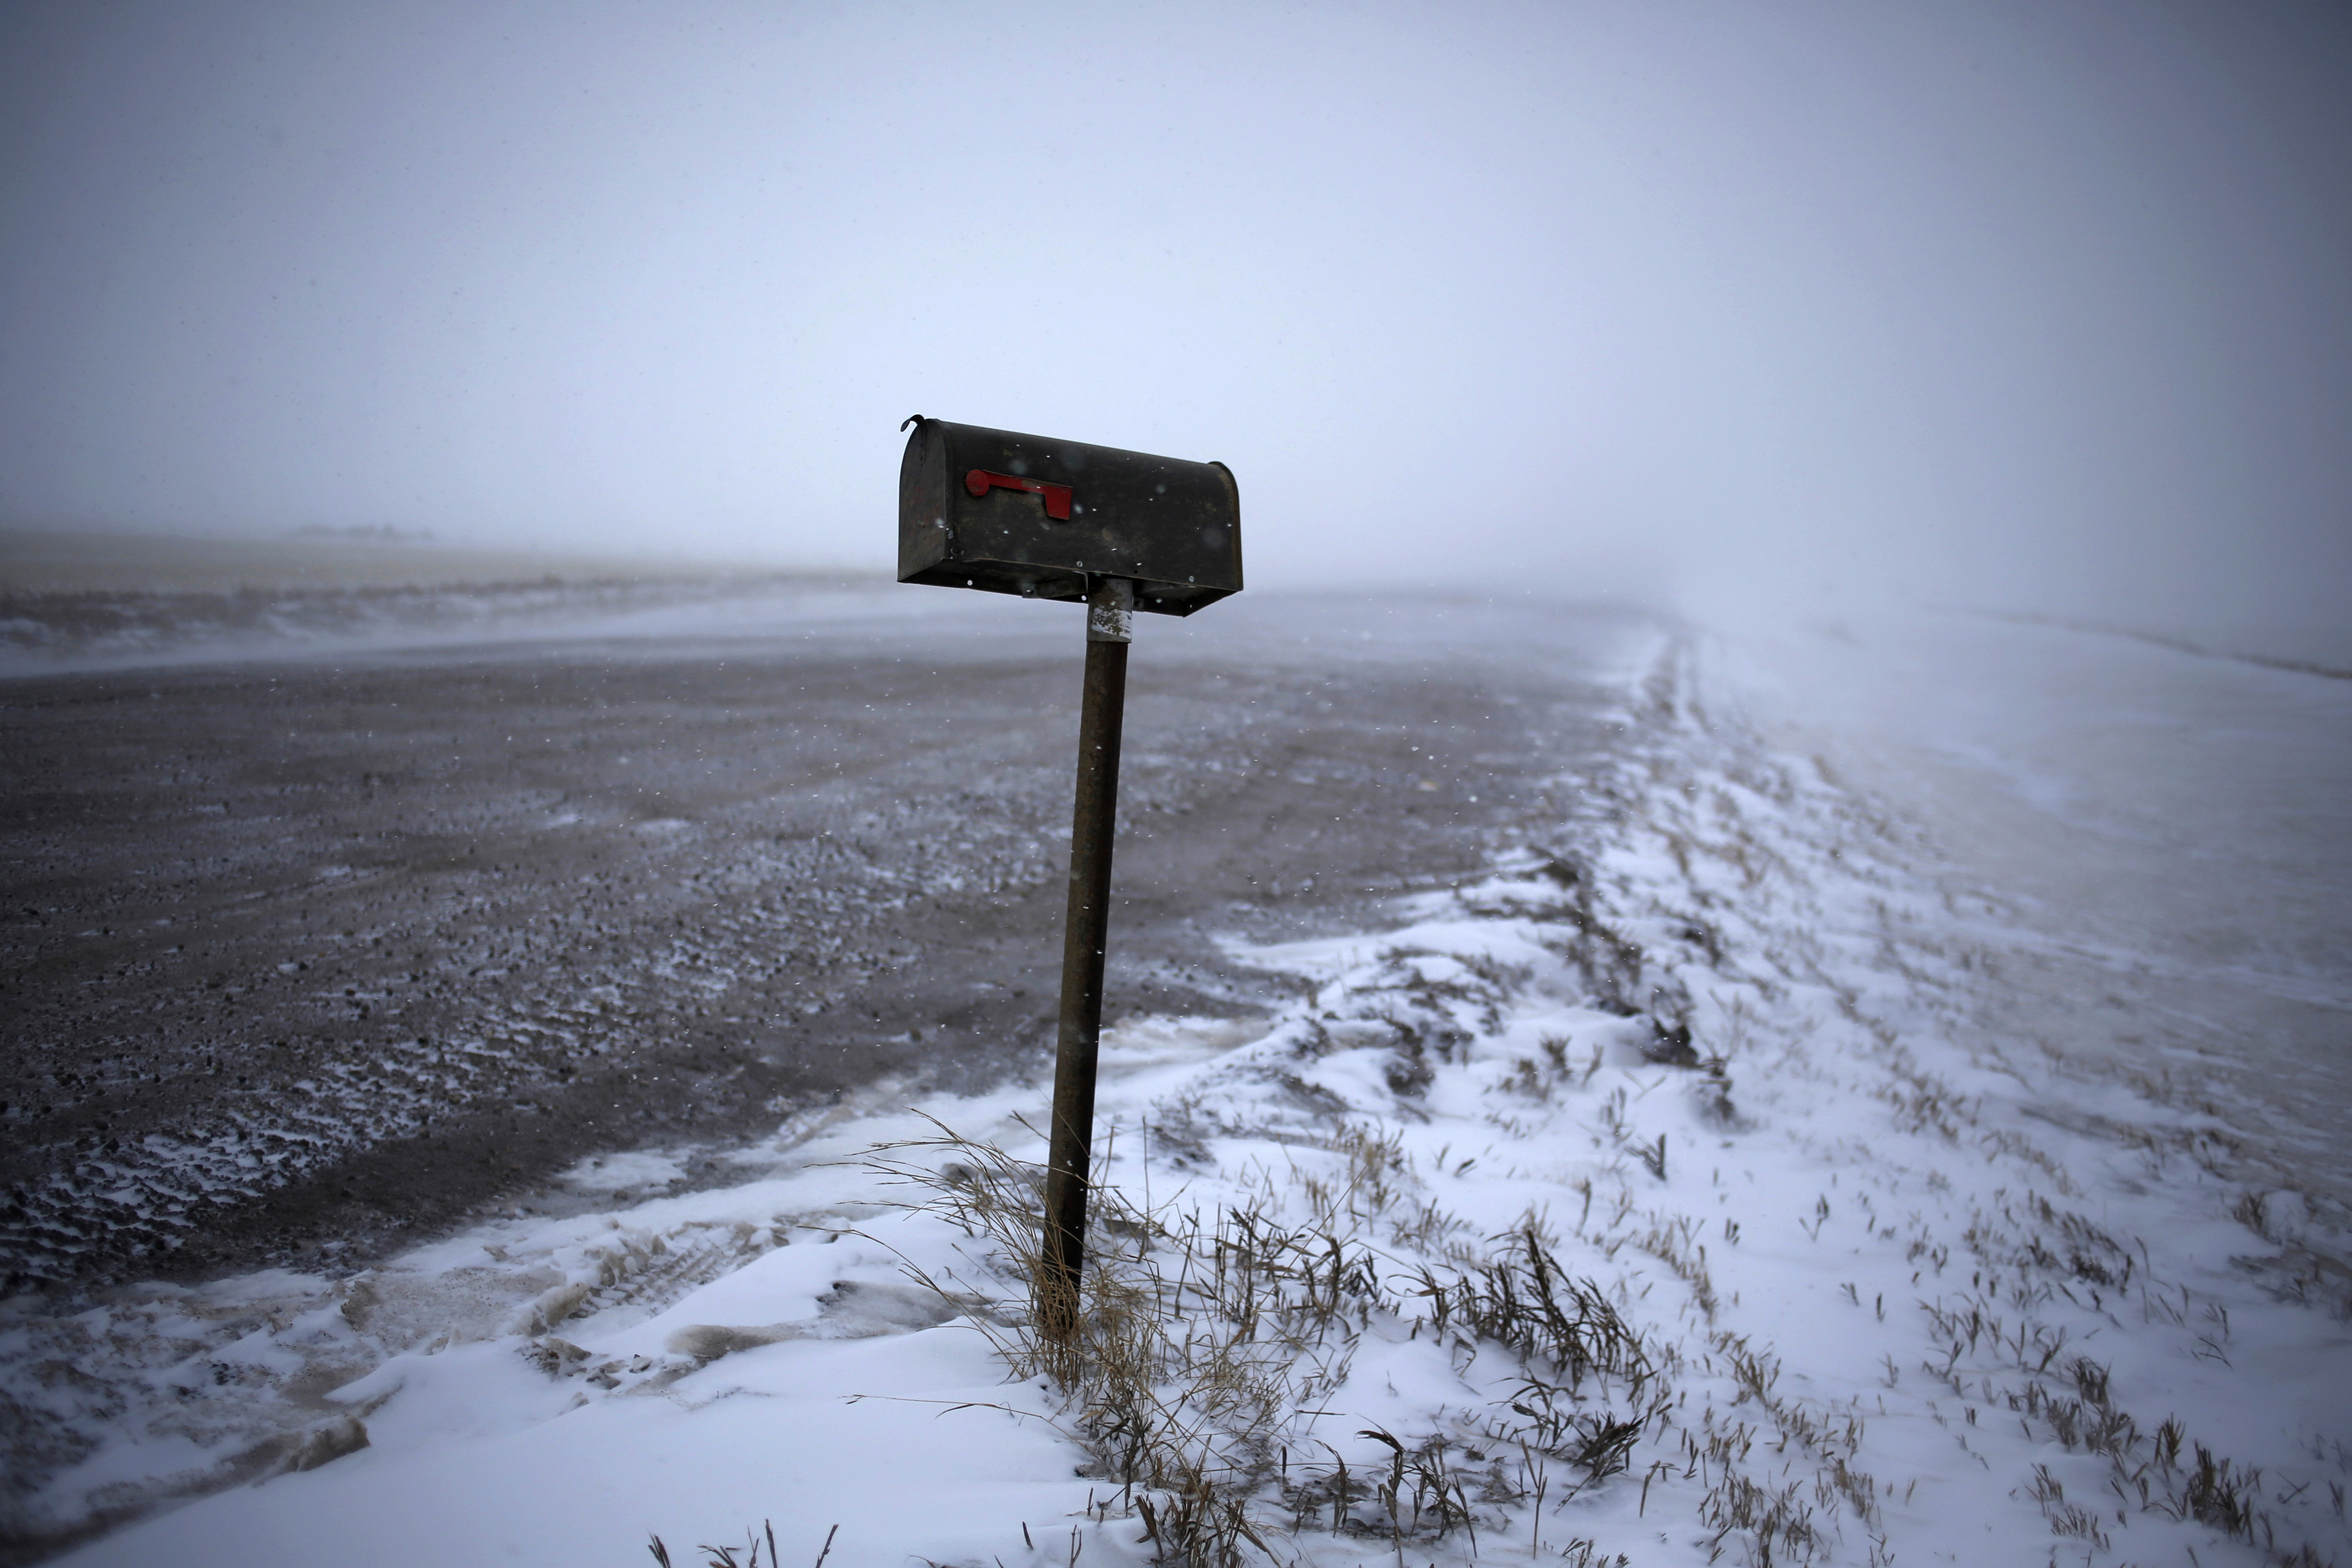 A mailbox is seen along a road during a snowstorm outside of Williston, North Dakota March 11, 2013.